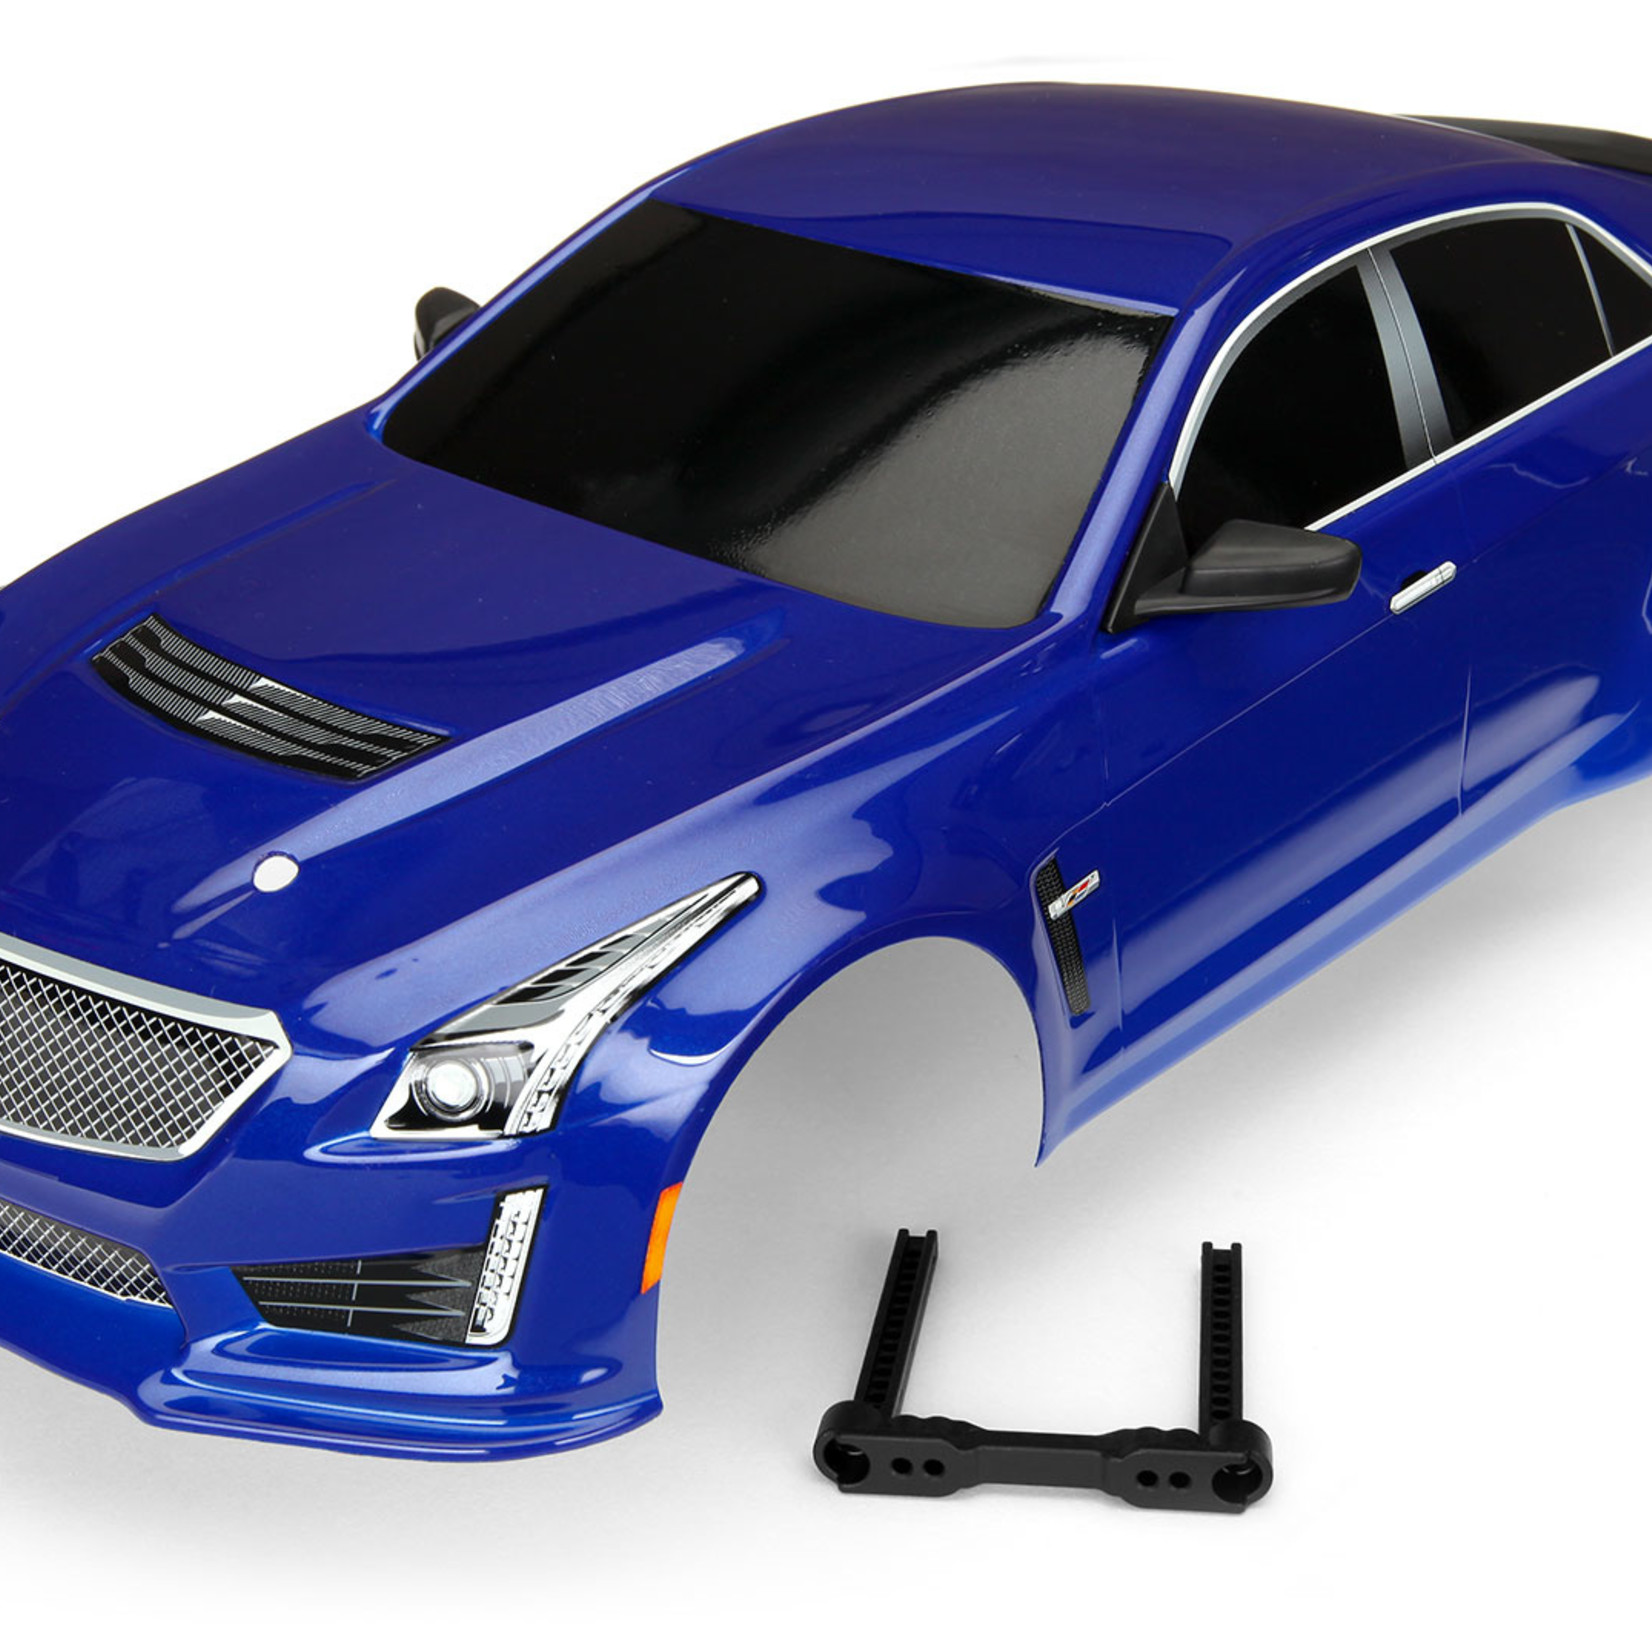 Traxxas TRA8391A Traxxas Body, Cadillac Cts-V, Blue (Painted, Decals Applied)